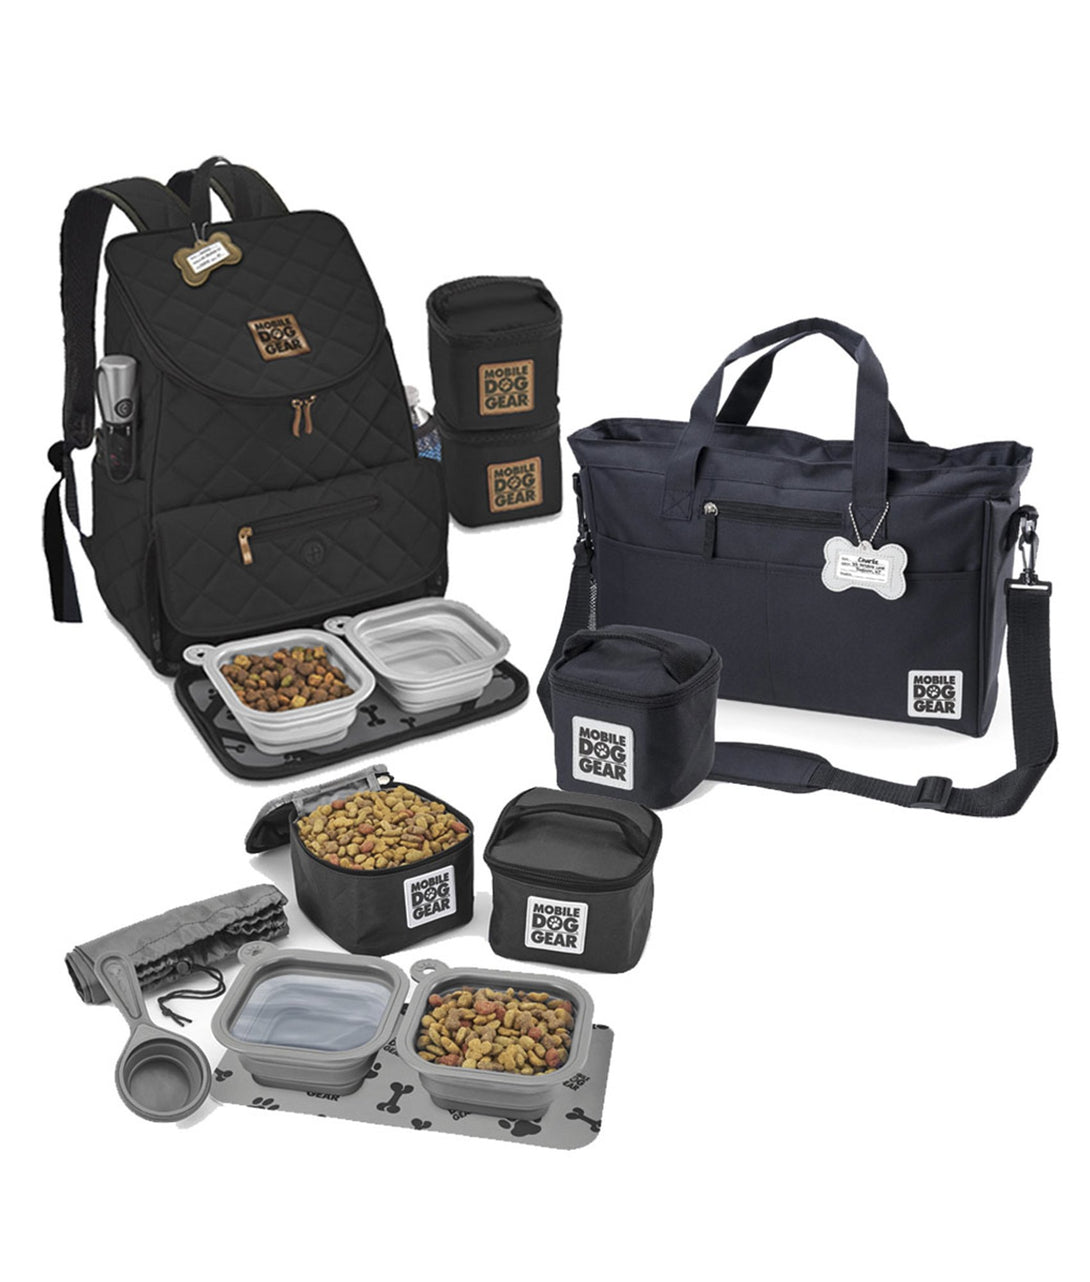 Mobile Dog Gear Bundle: Day Away® Tote Bag, Dine Away® Set for Small Dogs, Weekender Backpack